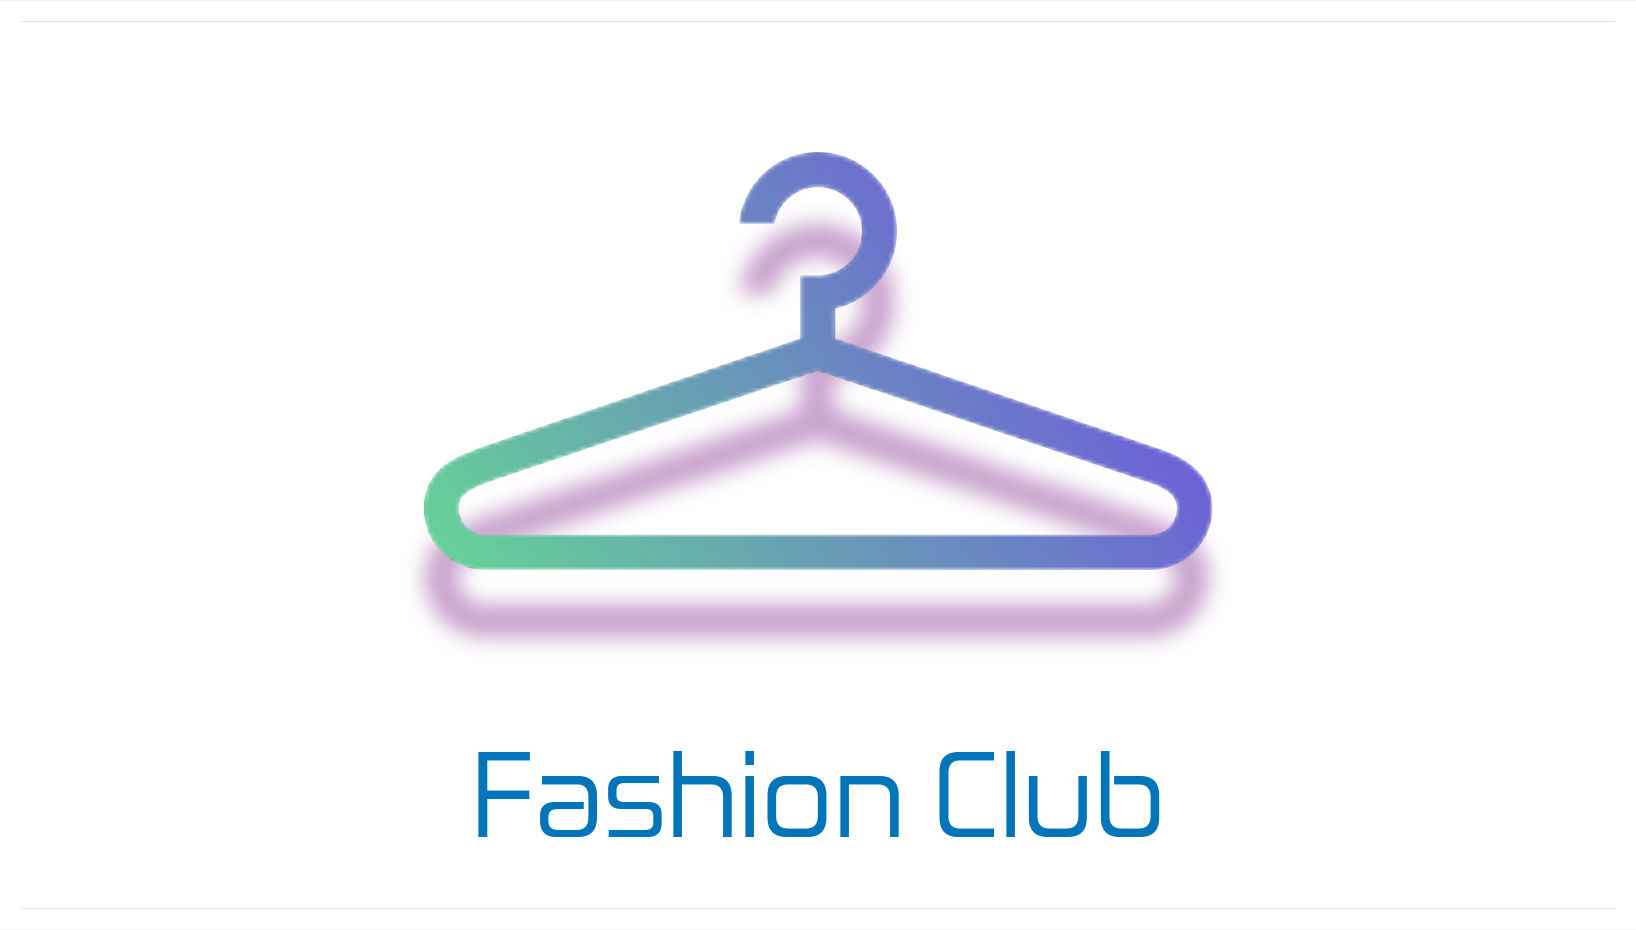 Fashion Club Logo